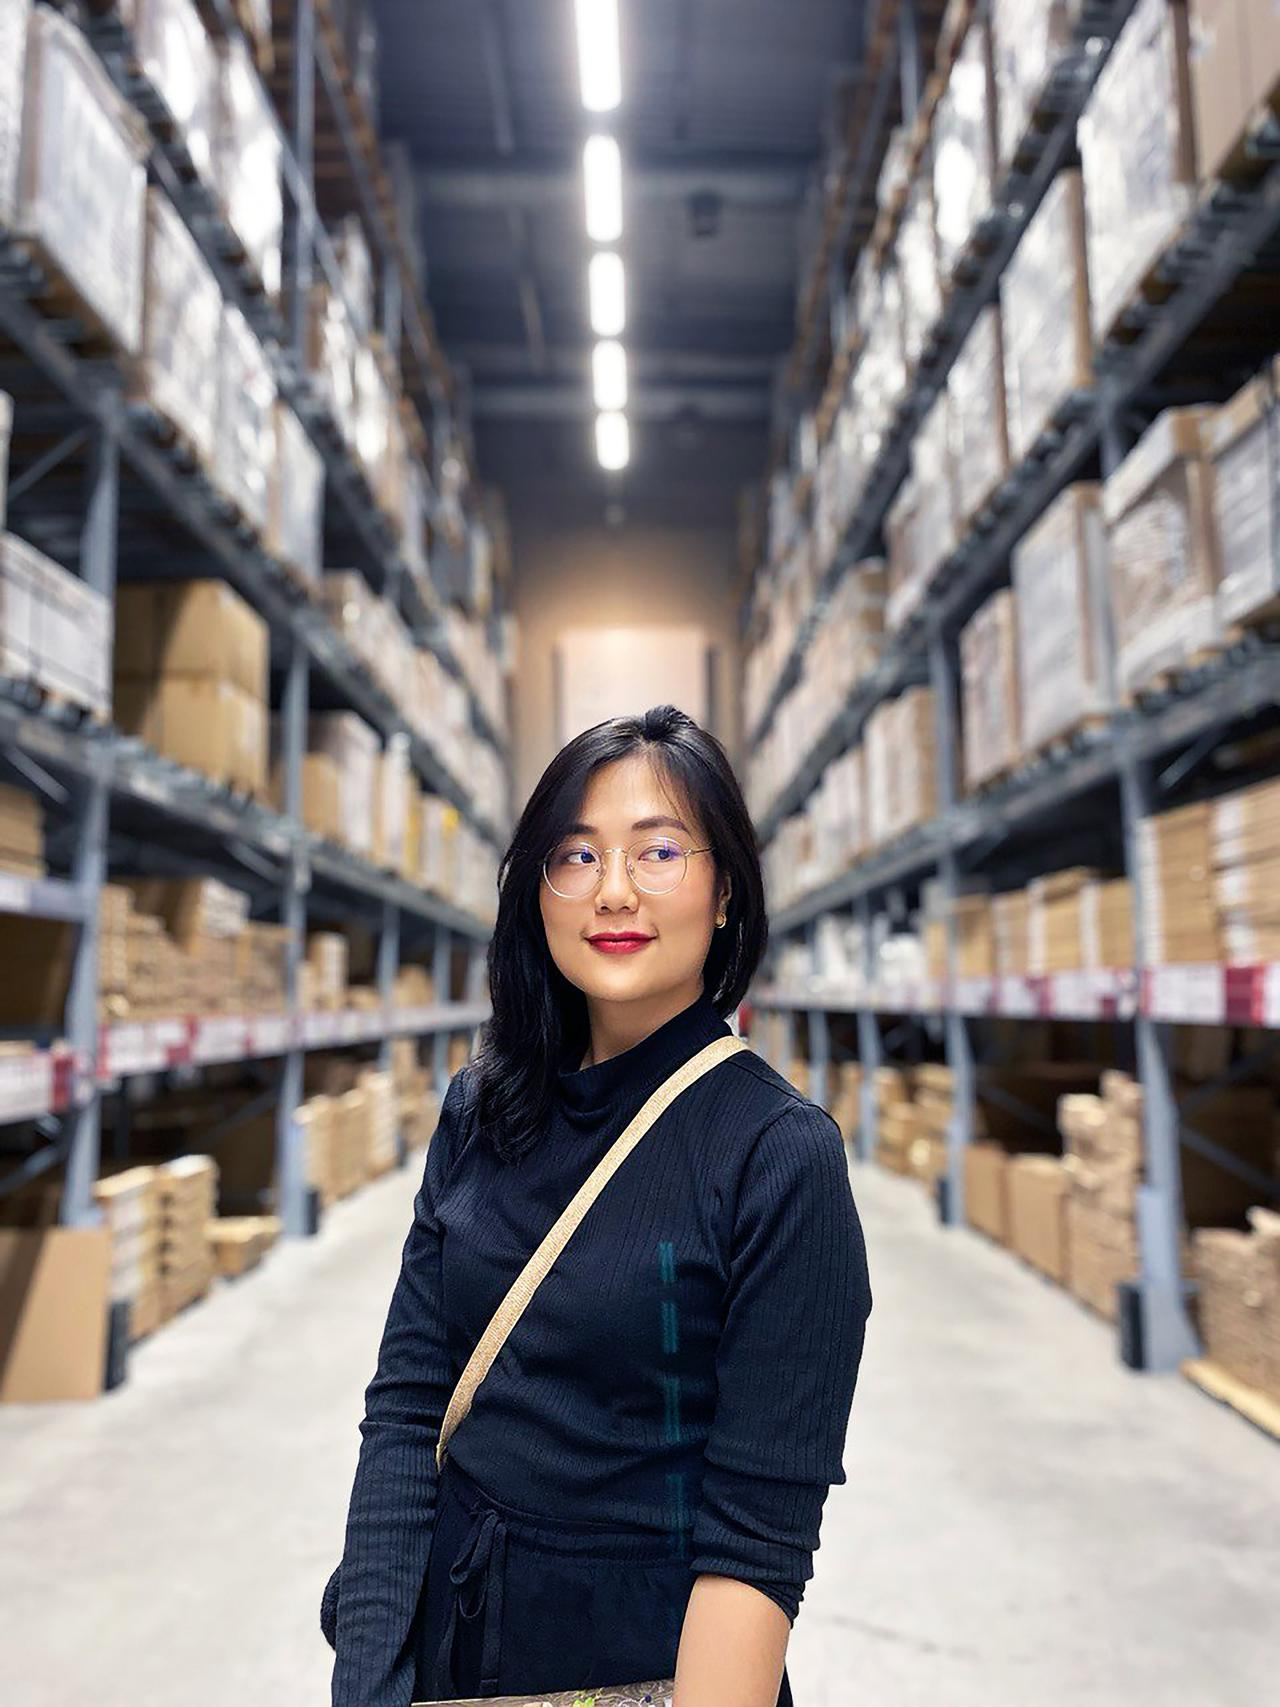 Warehouse employee who found job through fulfillment employee staffing in St. Louis.